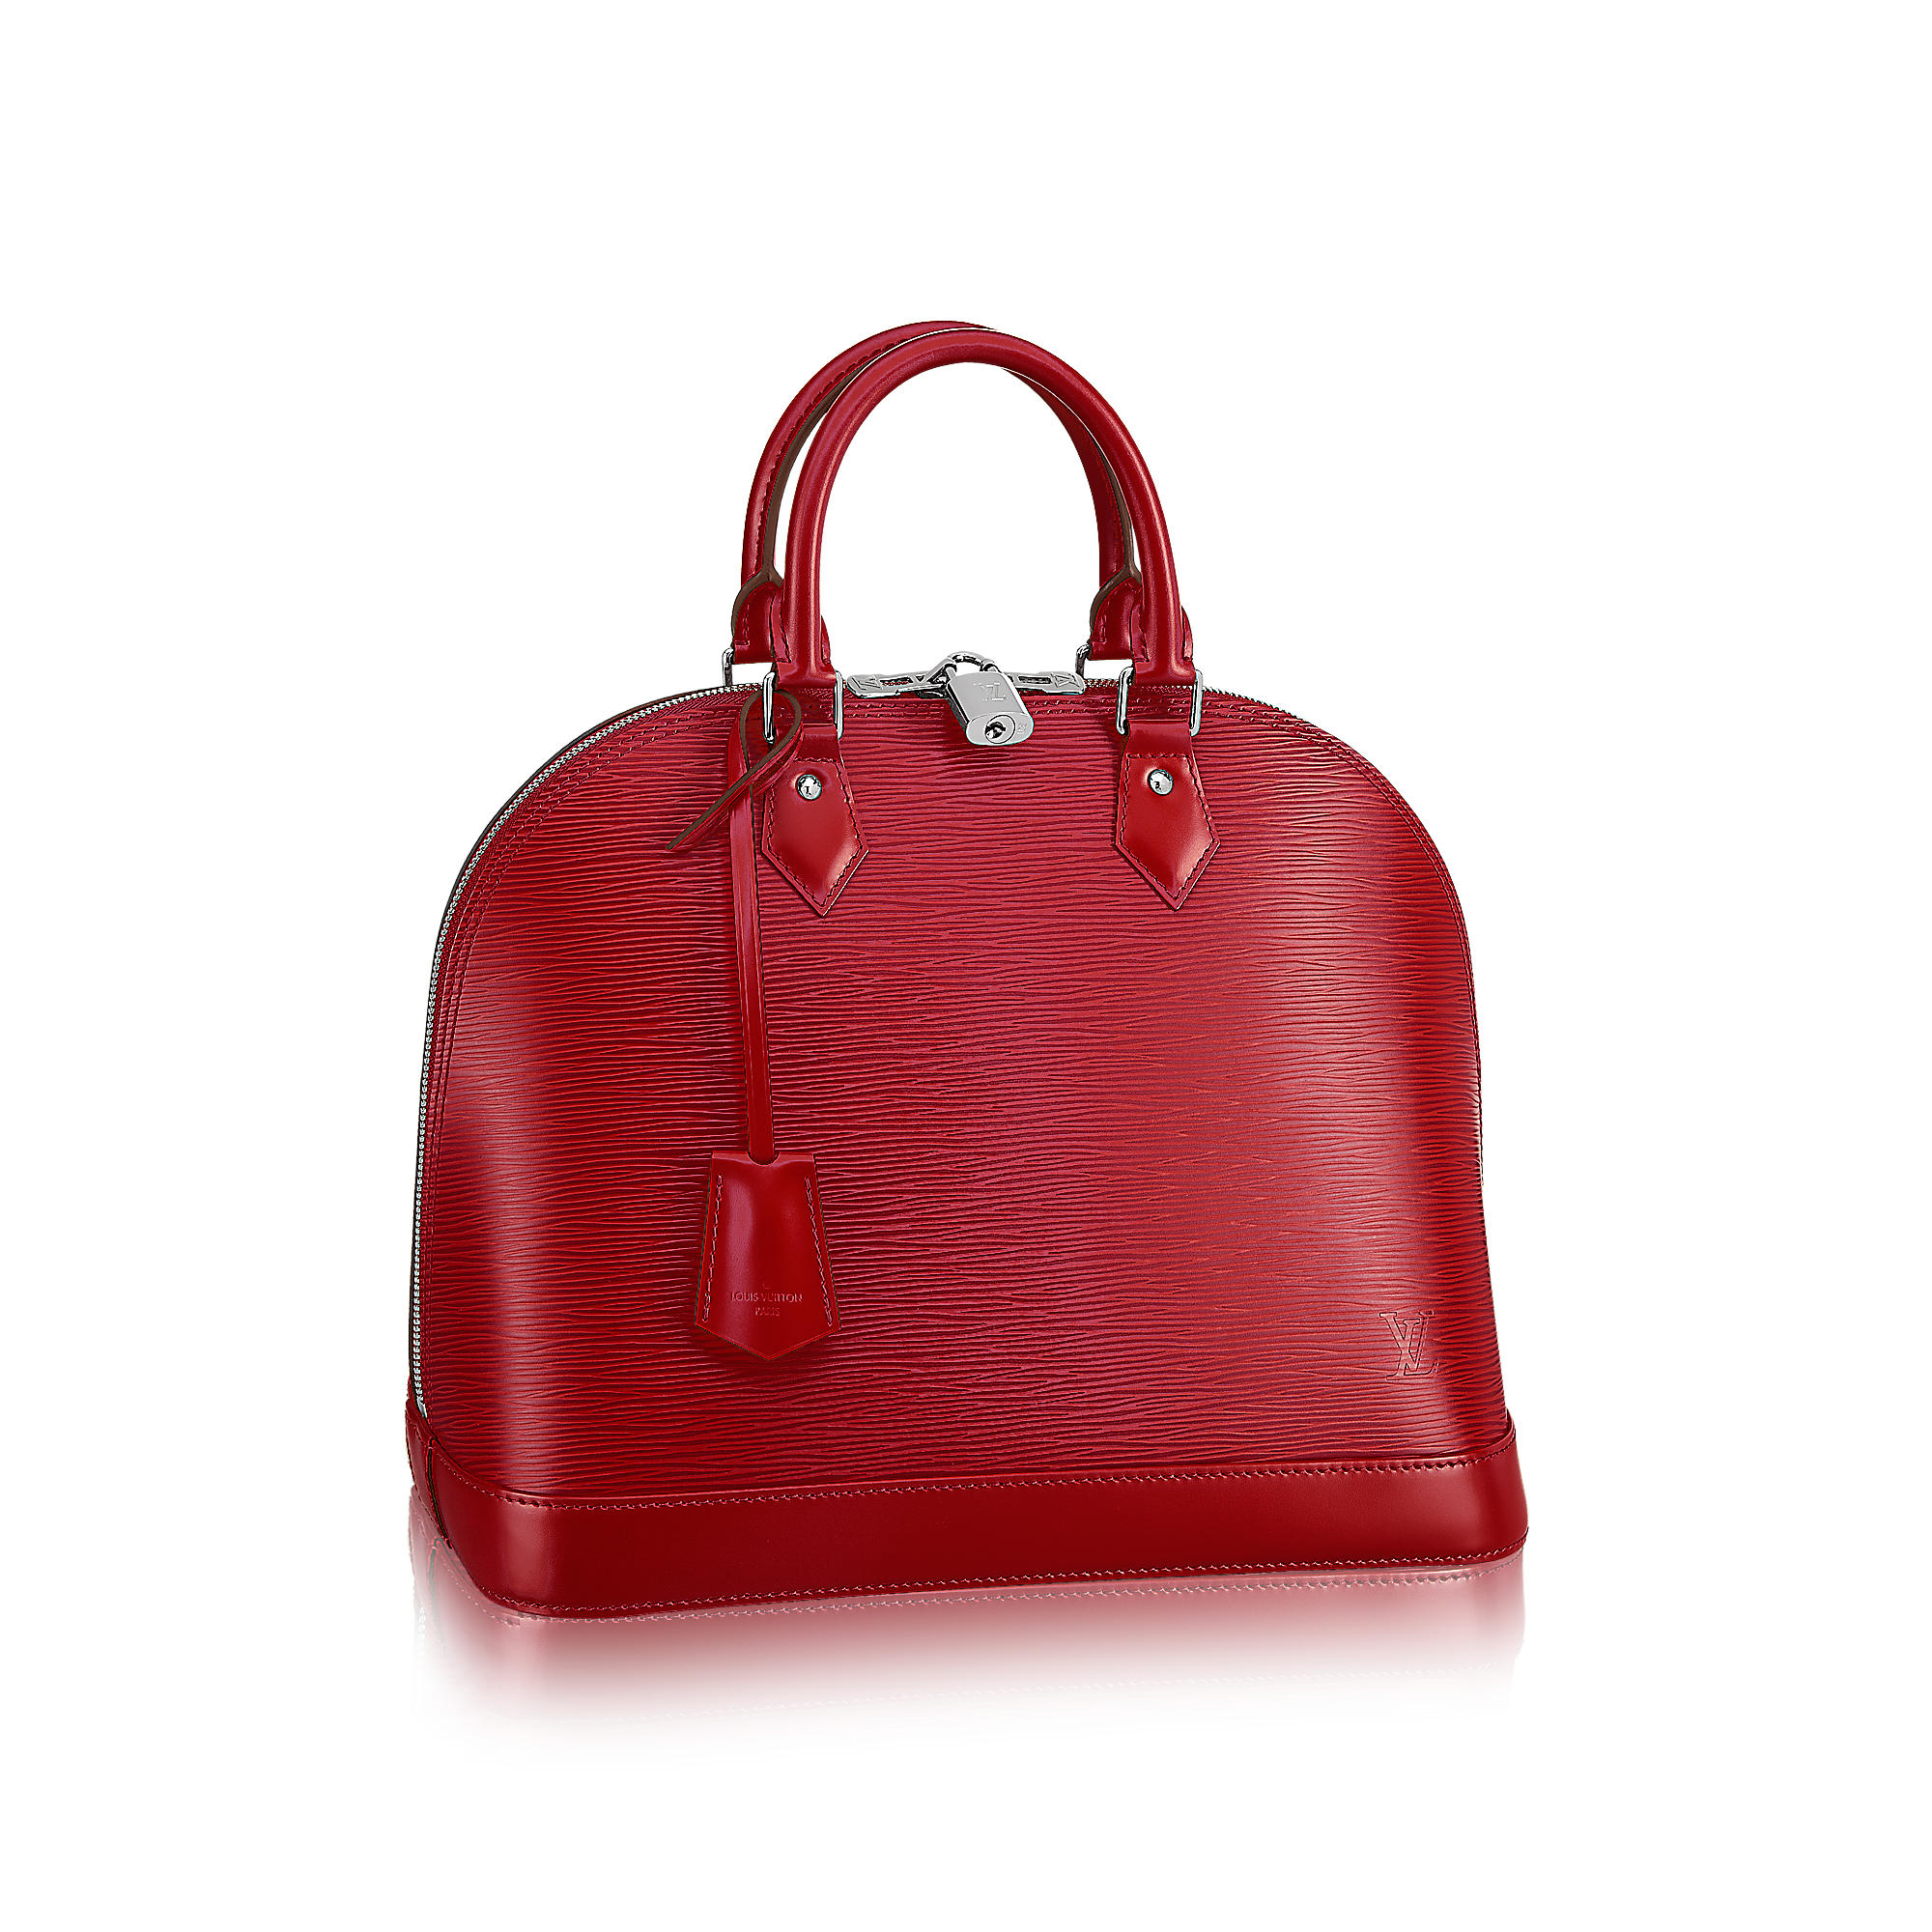 Alma mm epi leather rossa